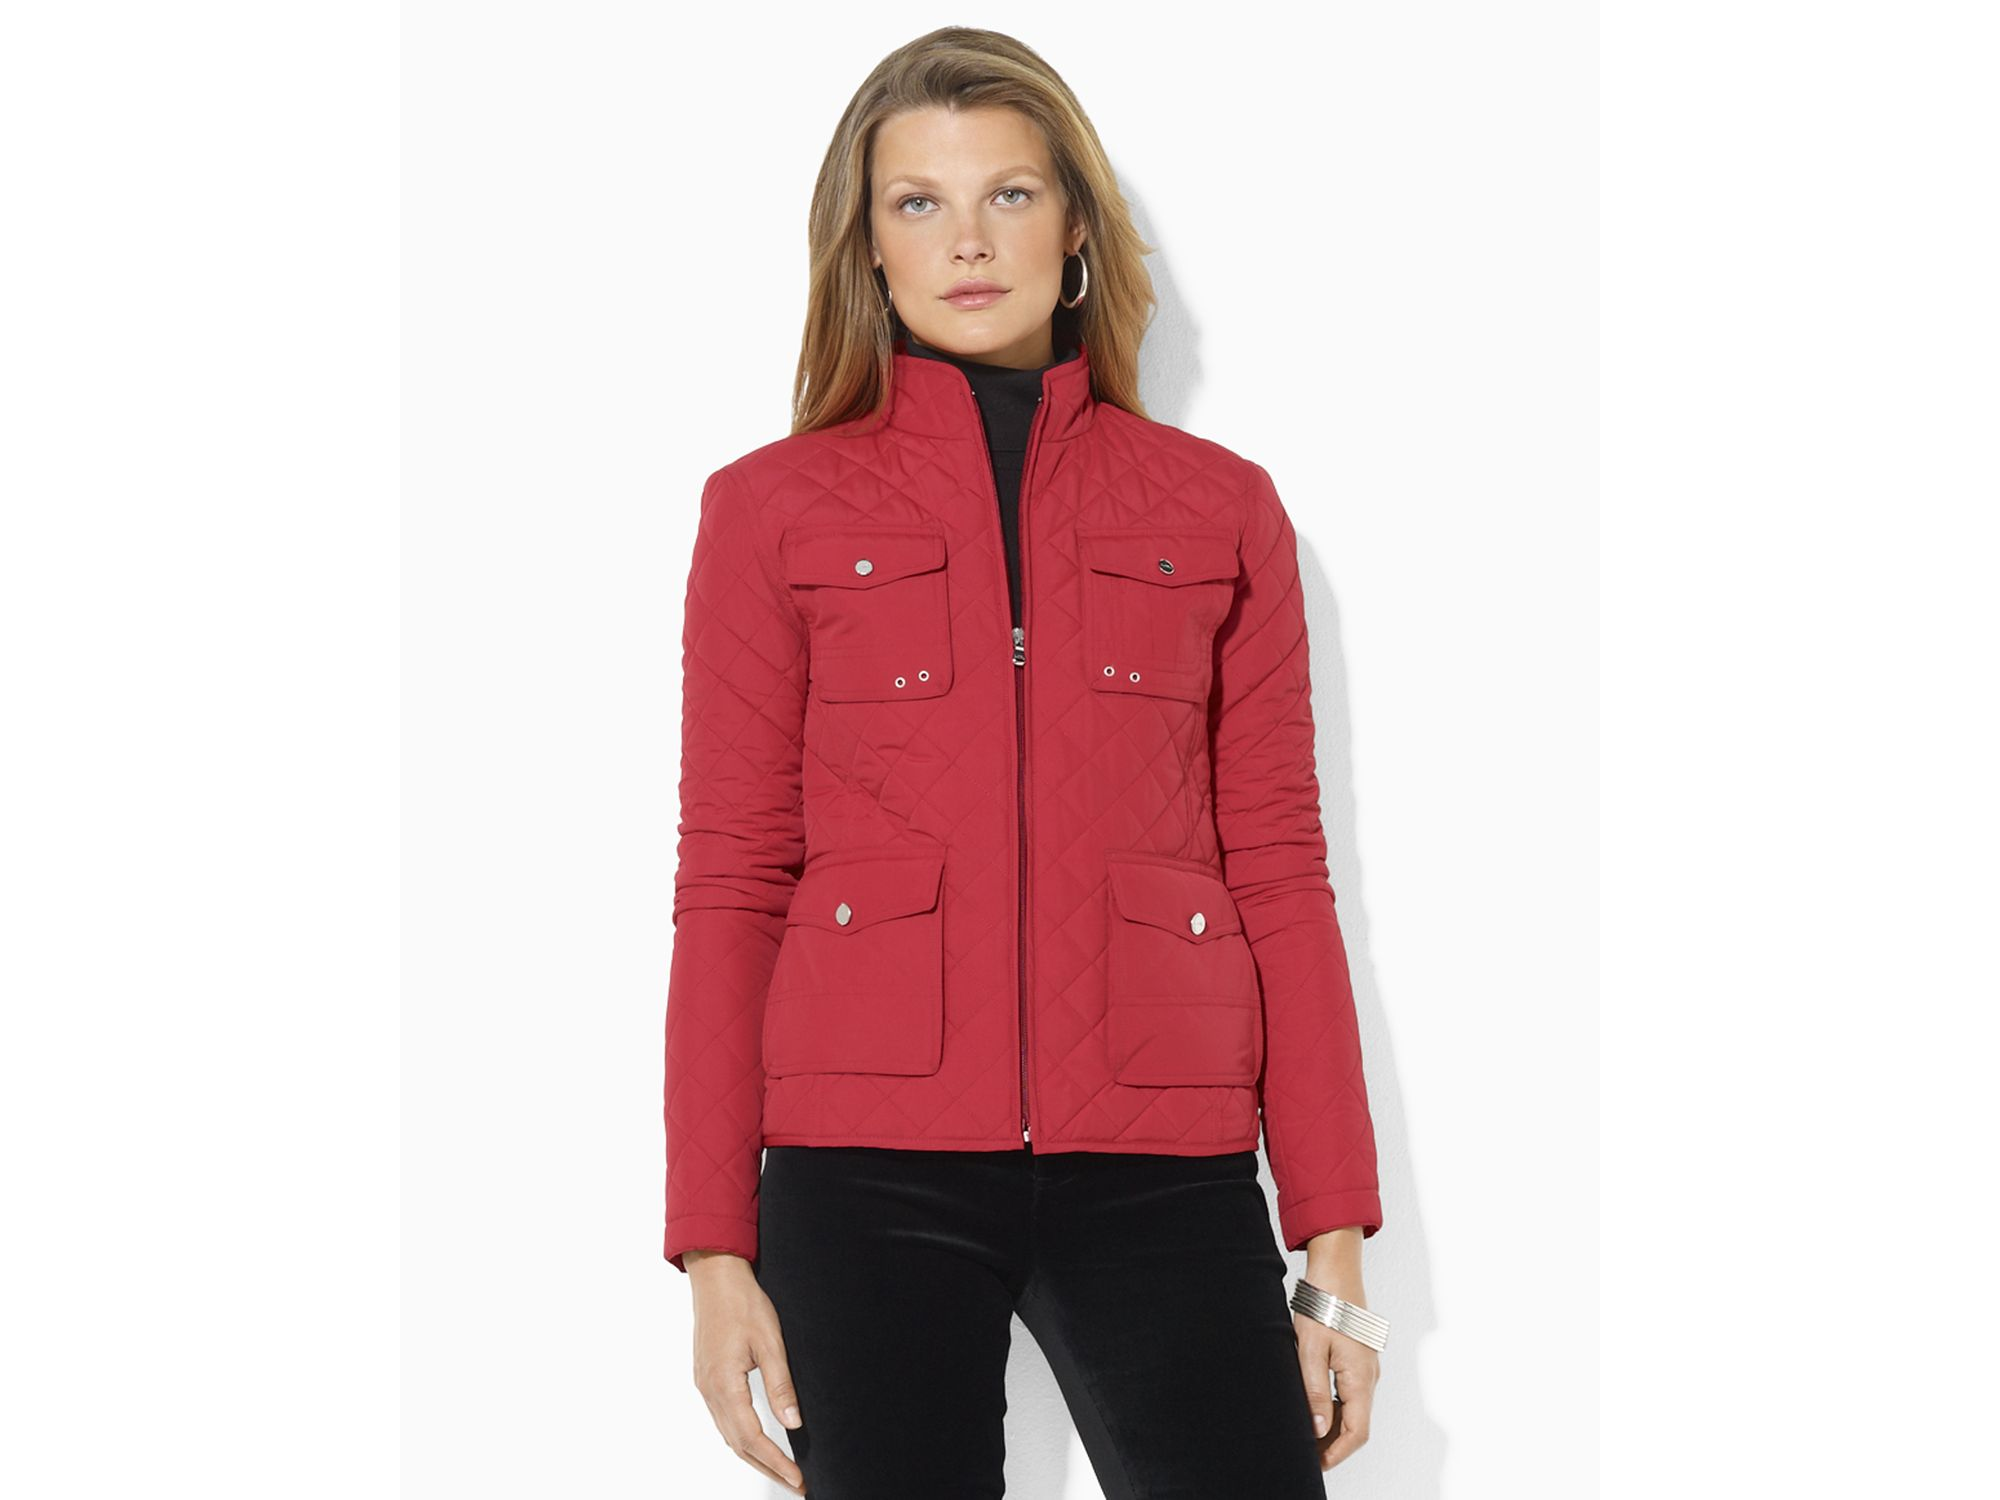 womens outerwear barn dark barns outfitters collections elements navy jackets s front noble jacket women